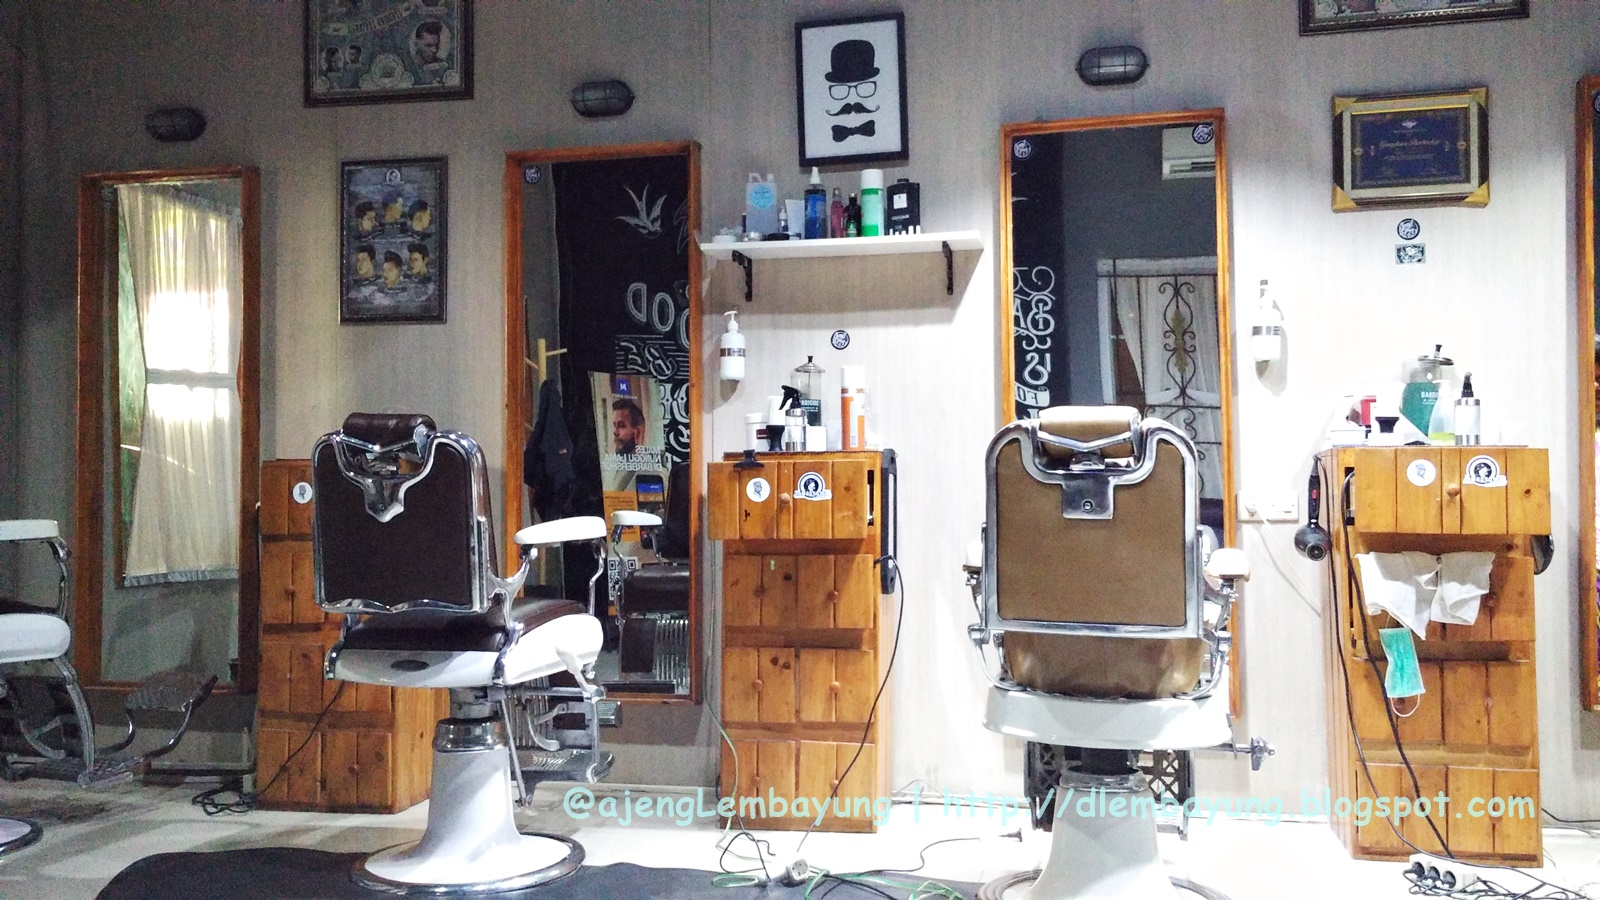 Rainbow After The Rain   Review  Pengalaman Cukur Rambut ke Barbershop ec1dbe2165